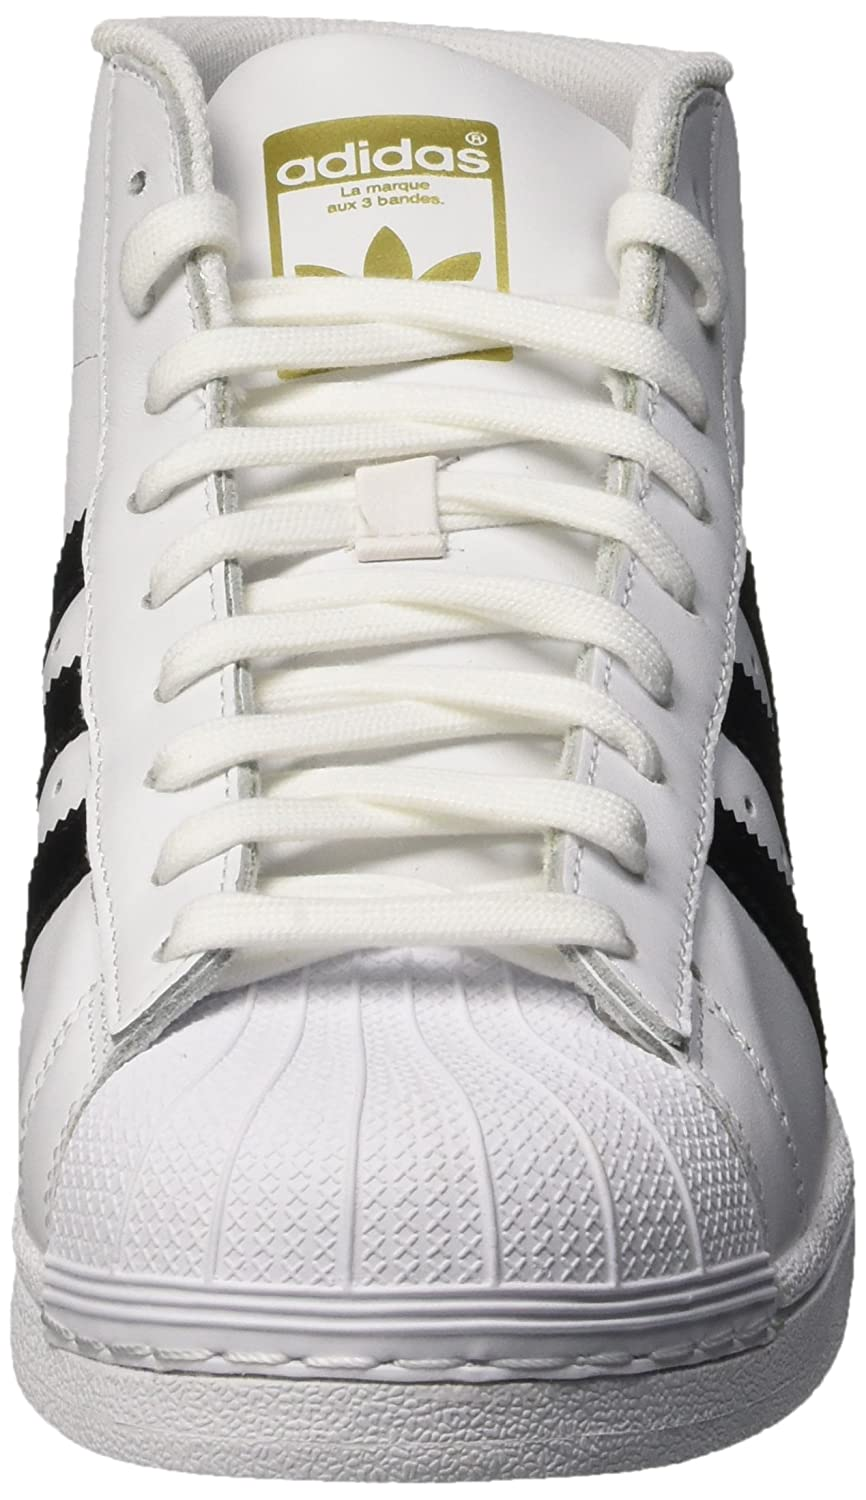 adidas PRO Model, Scarpe a Collo Alto Uomo: MainApps: Amazon.it: Scarpe e borse